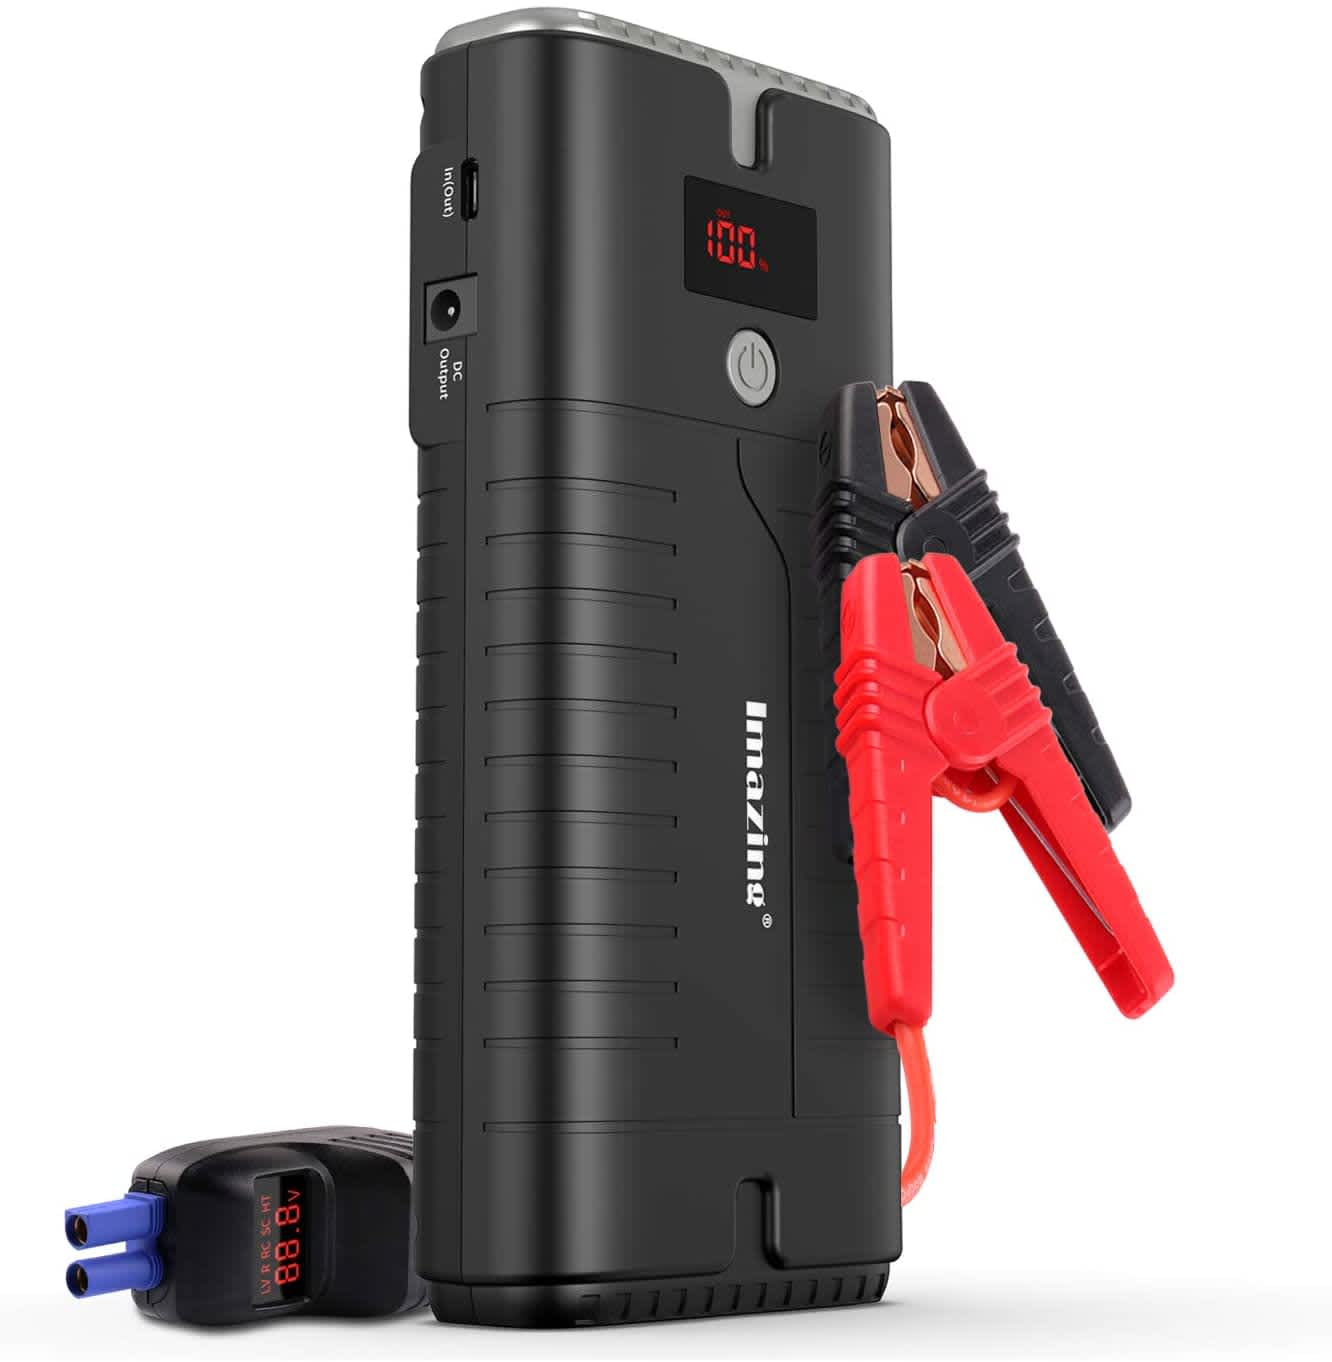 Imazing 18,000mAh Portable Car Jump Starter